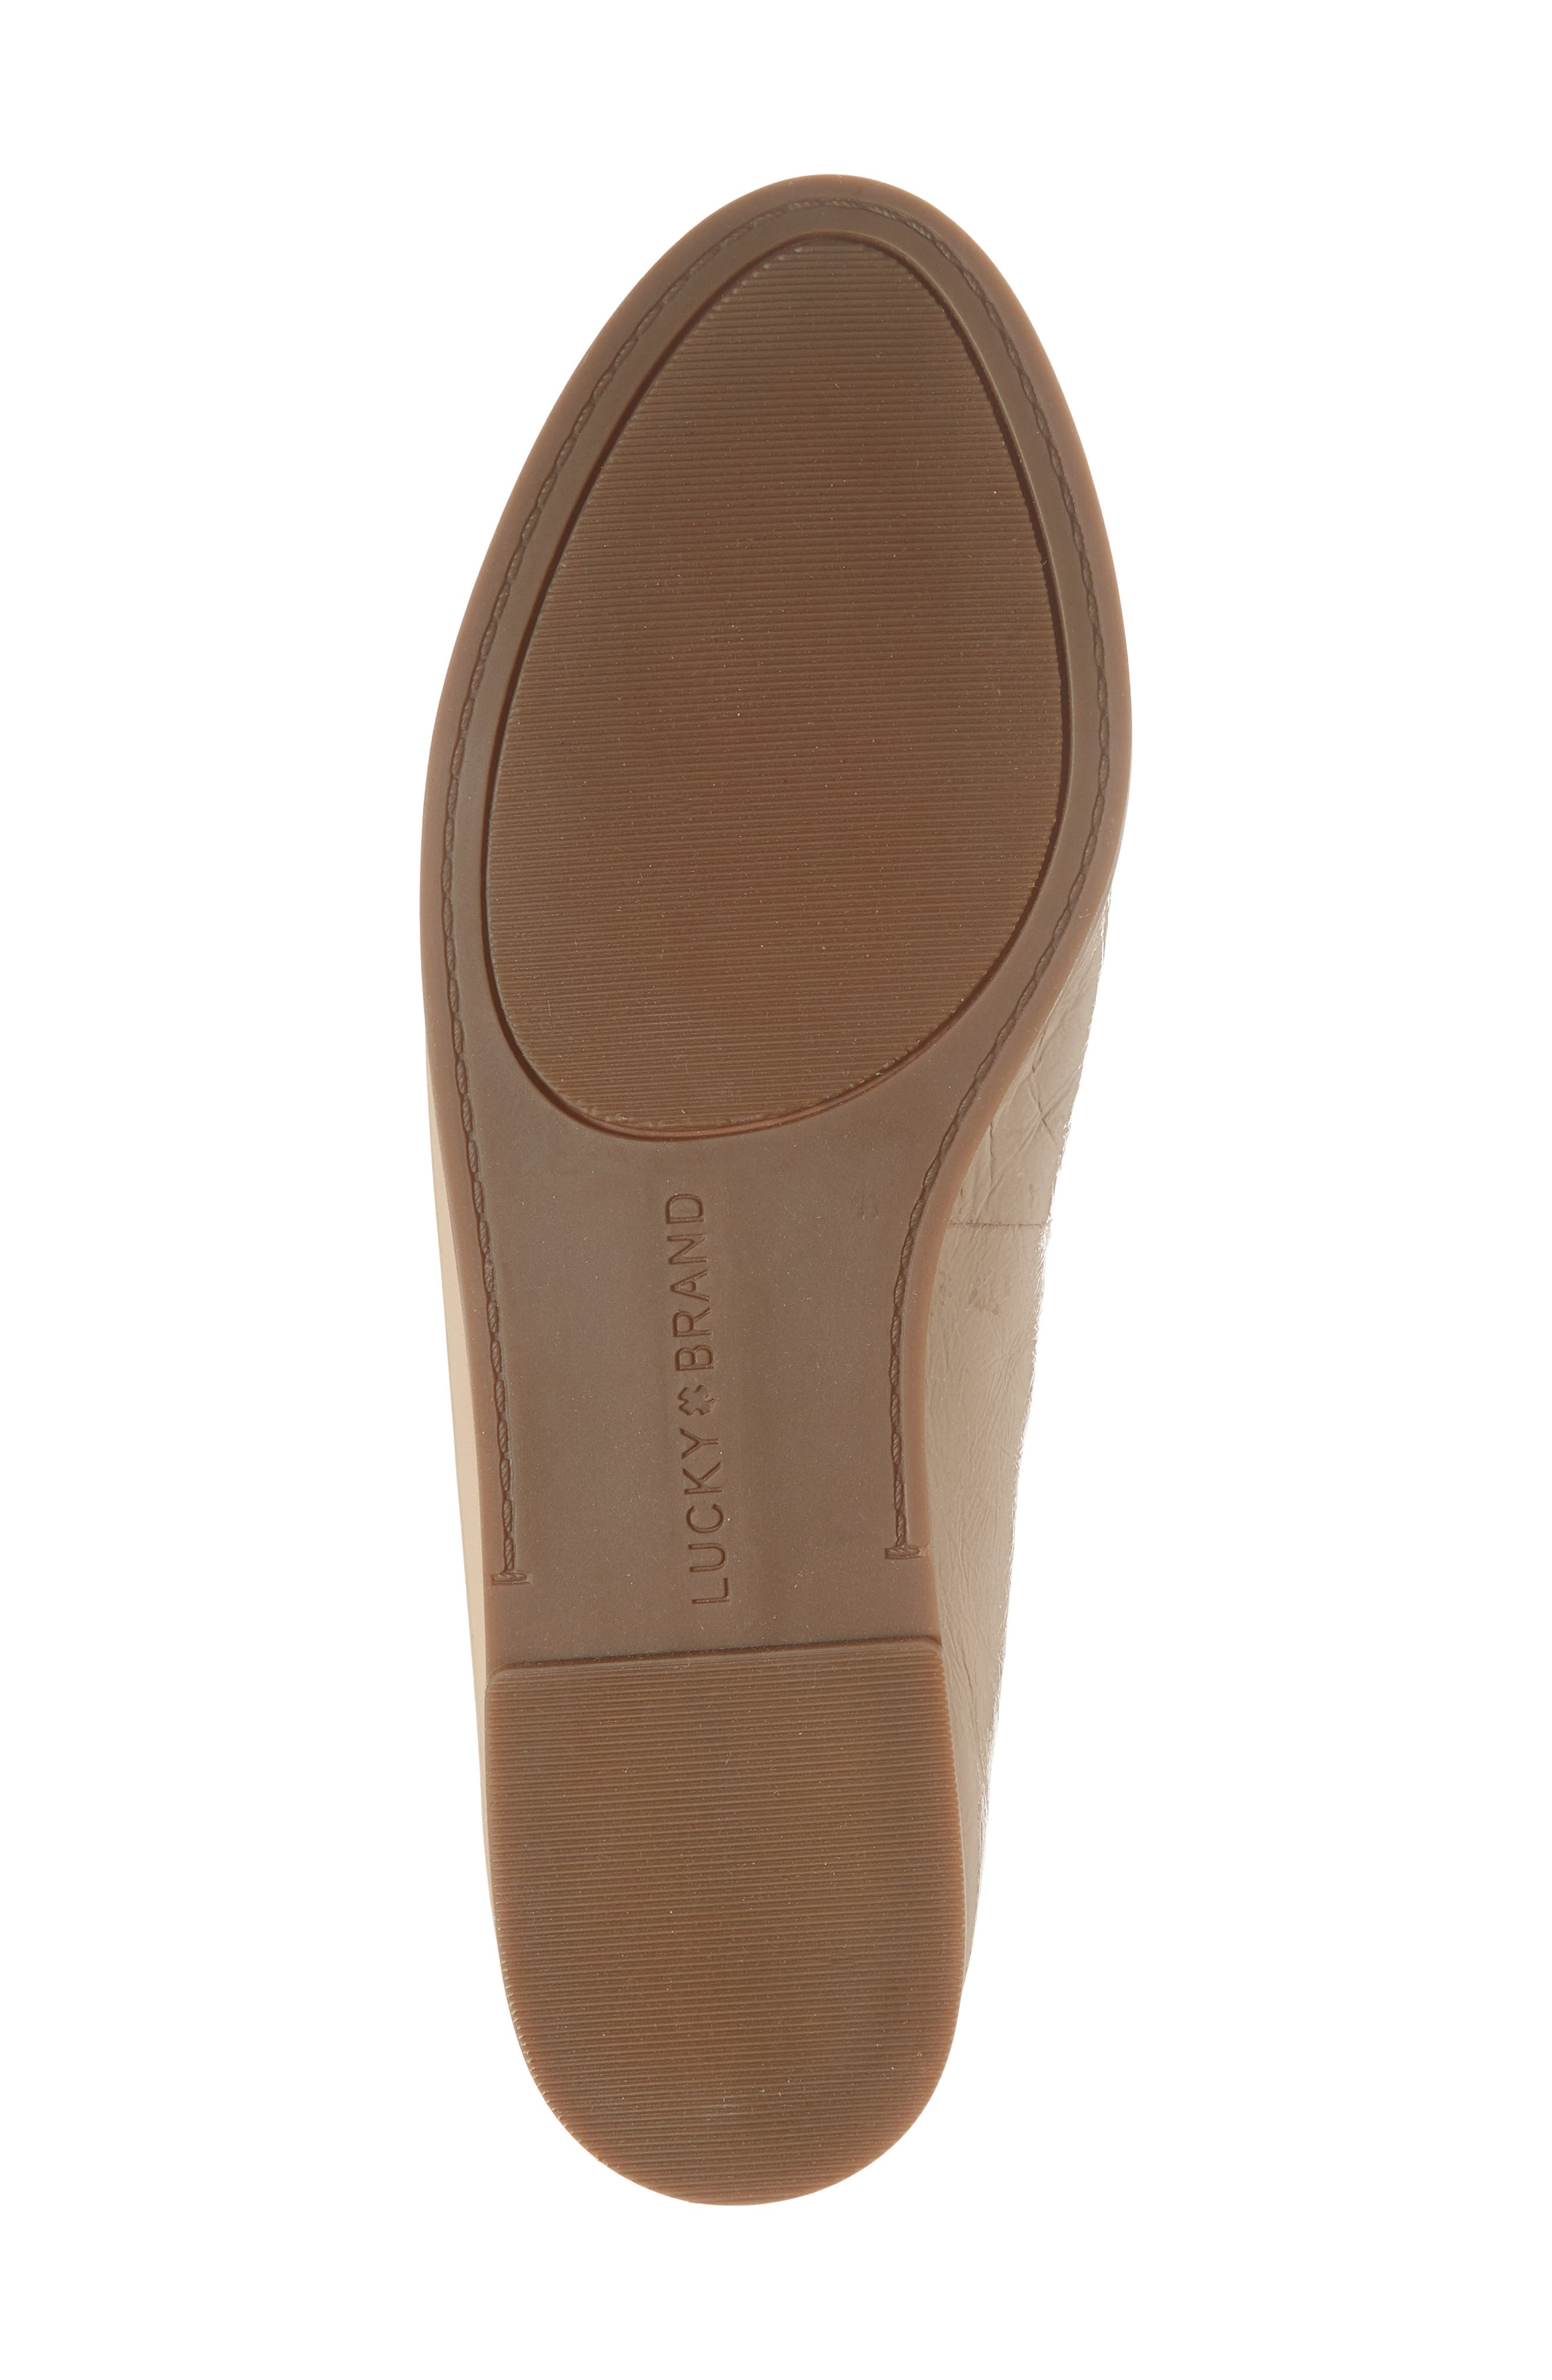 Ceentana Mary Jane Flat,                             Alternate thumbnail 6, color,                             Feather Leather